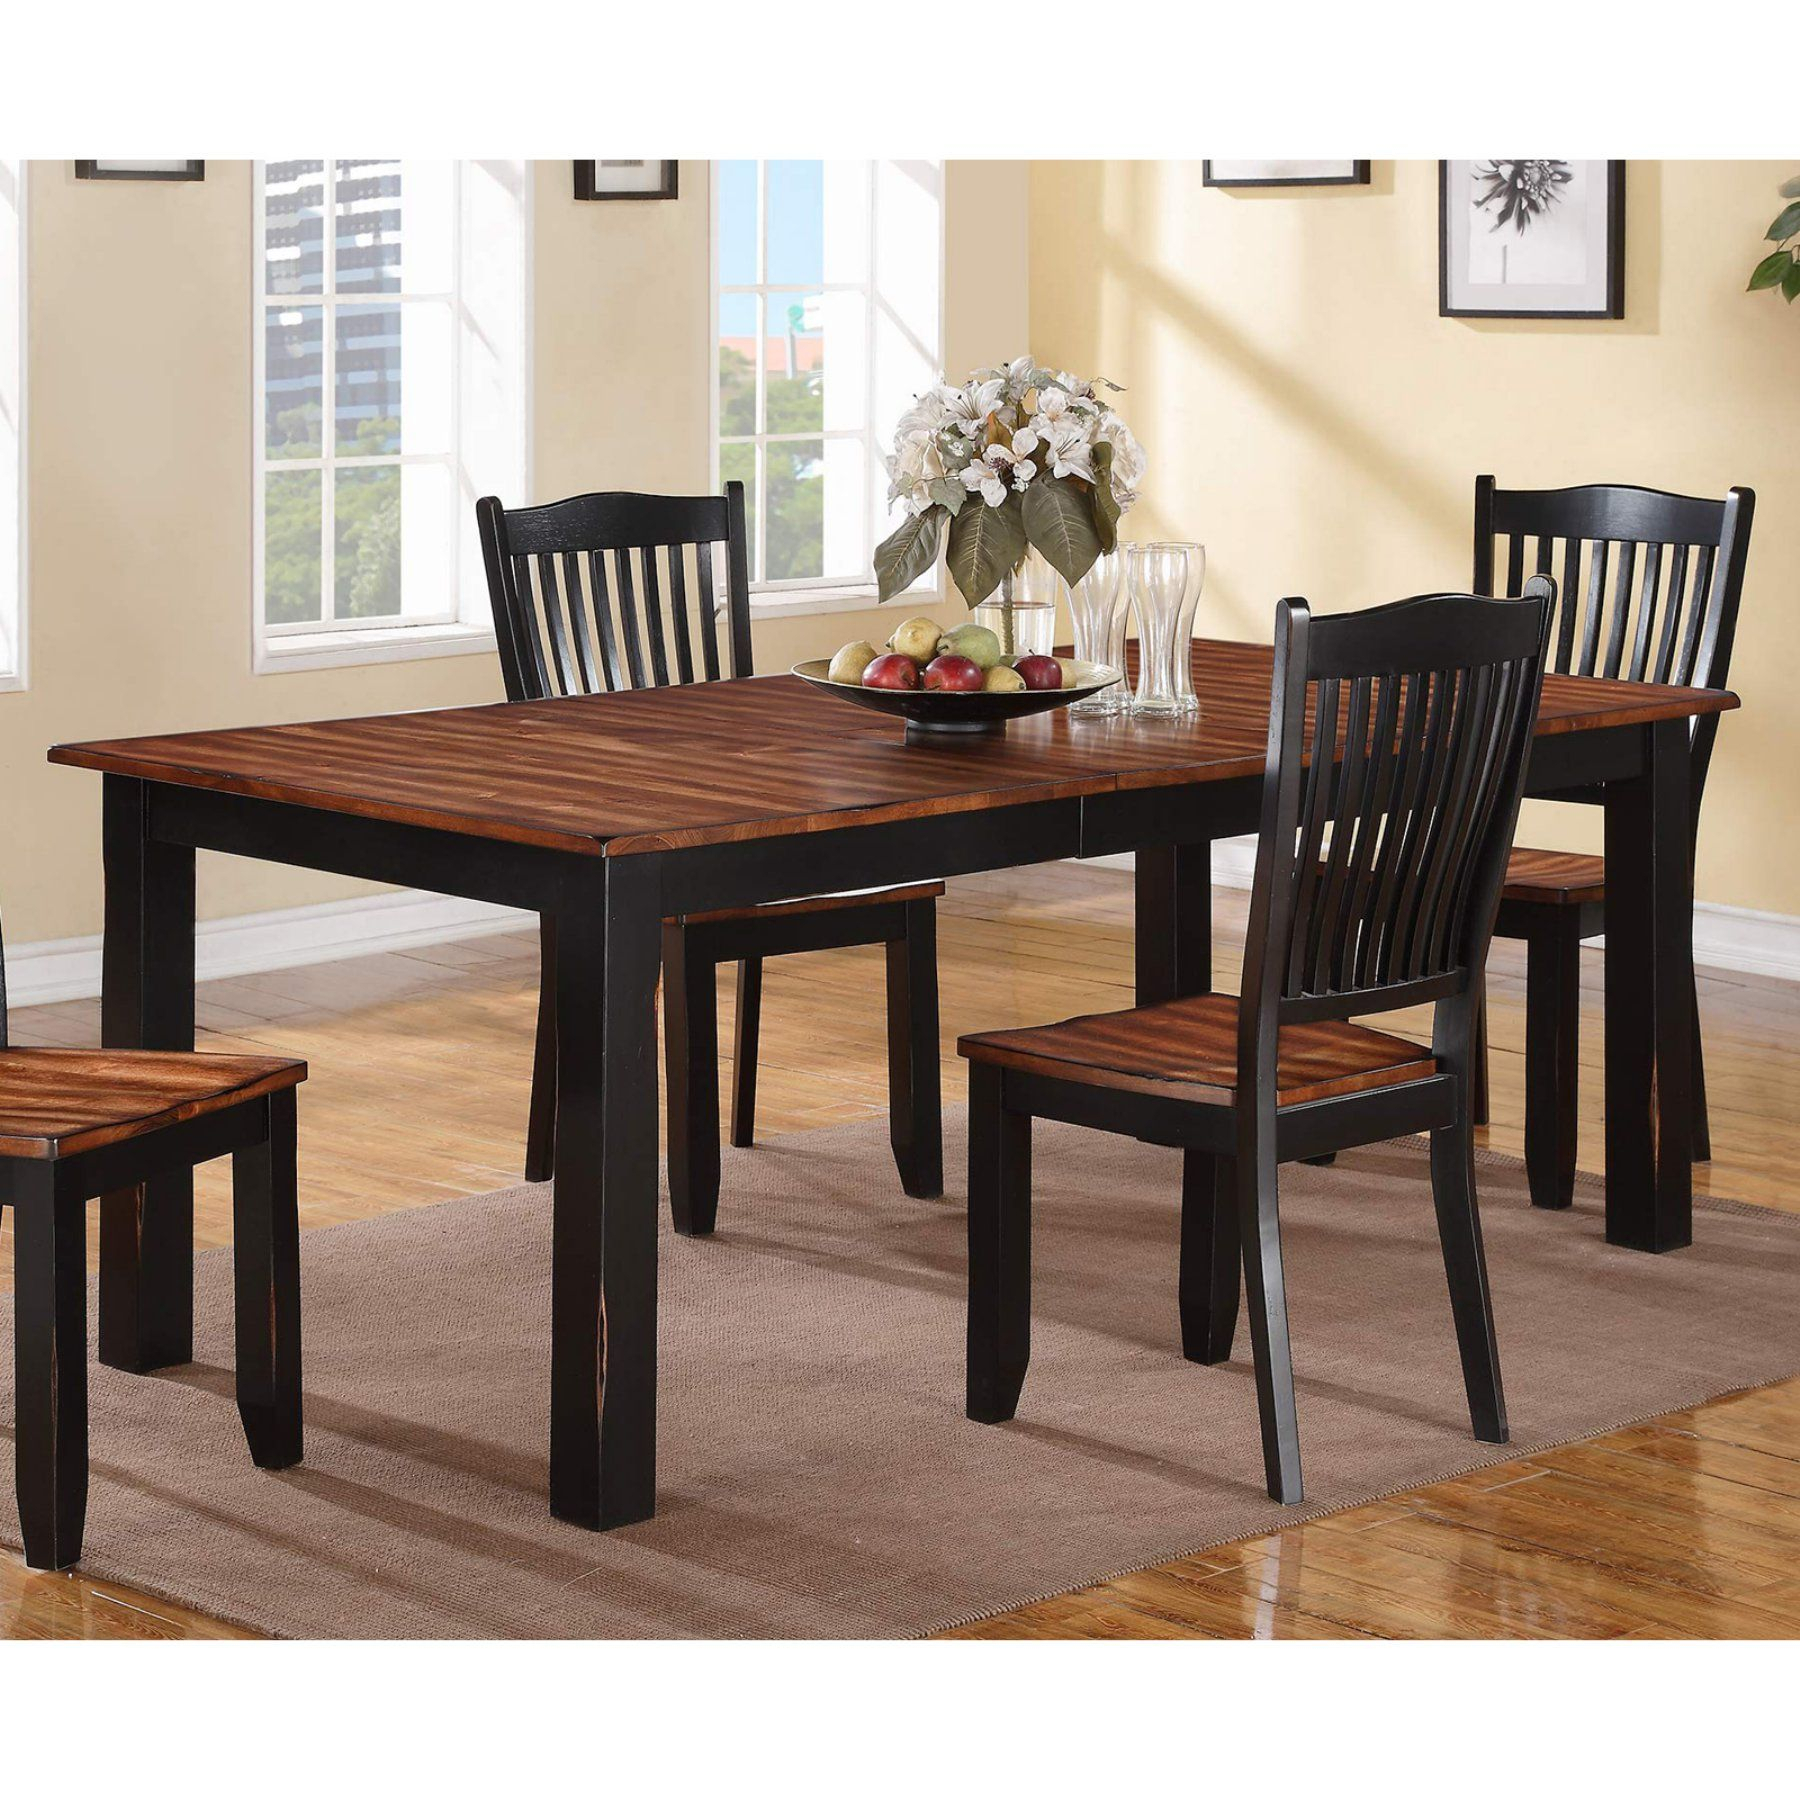 Winners Only Carson Dining Table – Dfc14284 | Products Regarding Most Up To Date Carson Counter Height Tables (View 8 of 25)